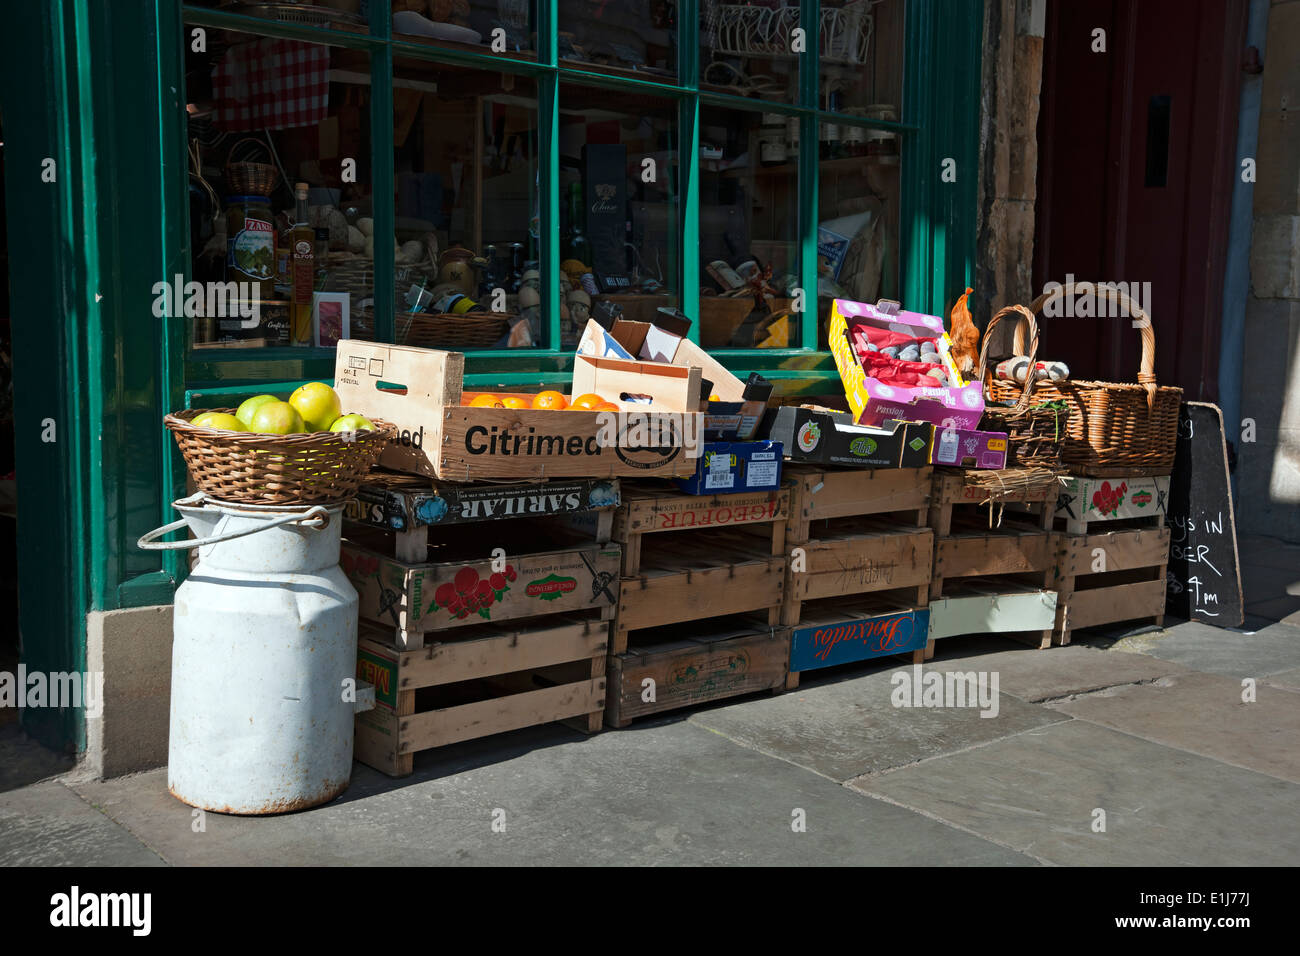 Fruit on display outside delicatessen York North Yorkshire England UK United Kingdom GB Great Britain - Stock Image